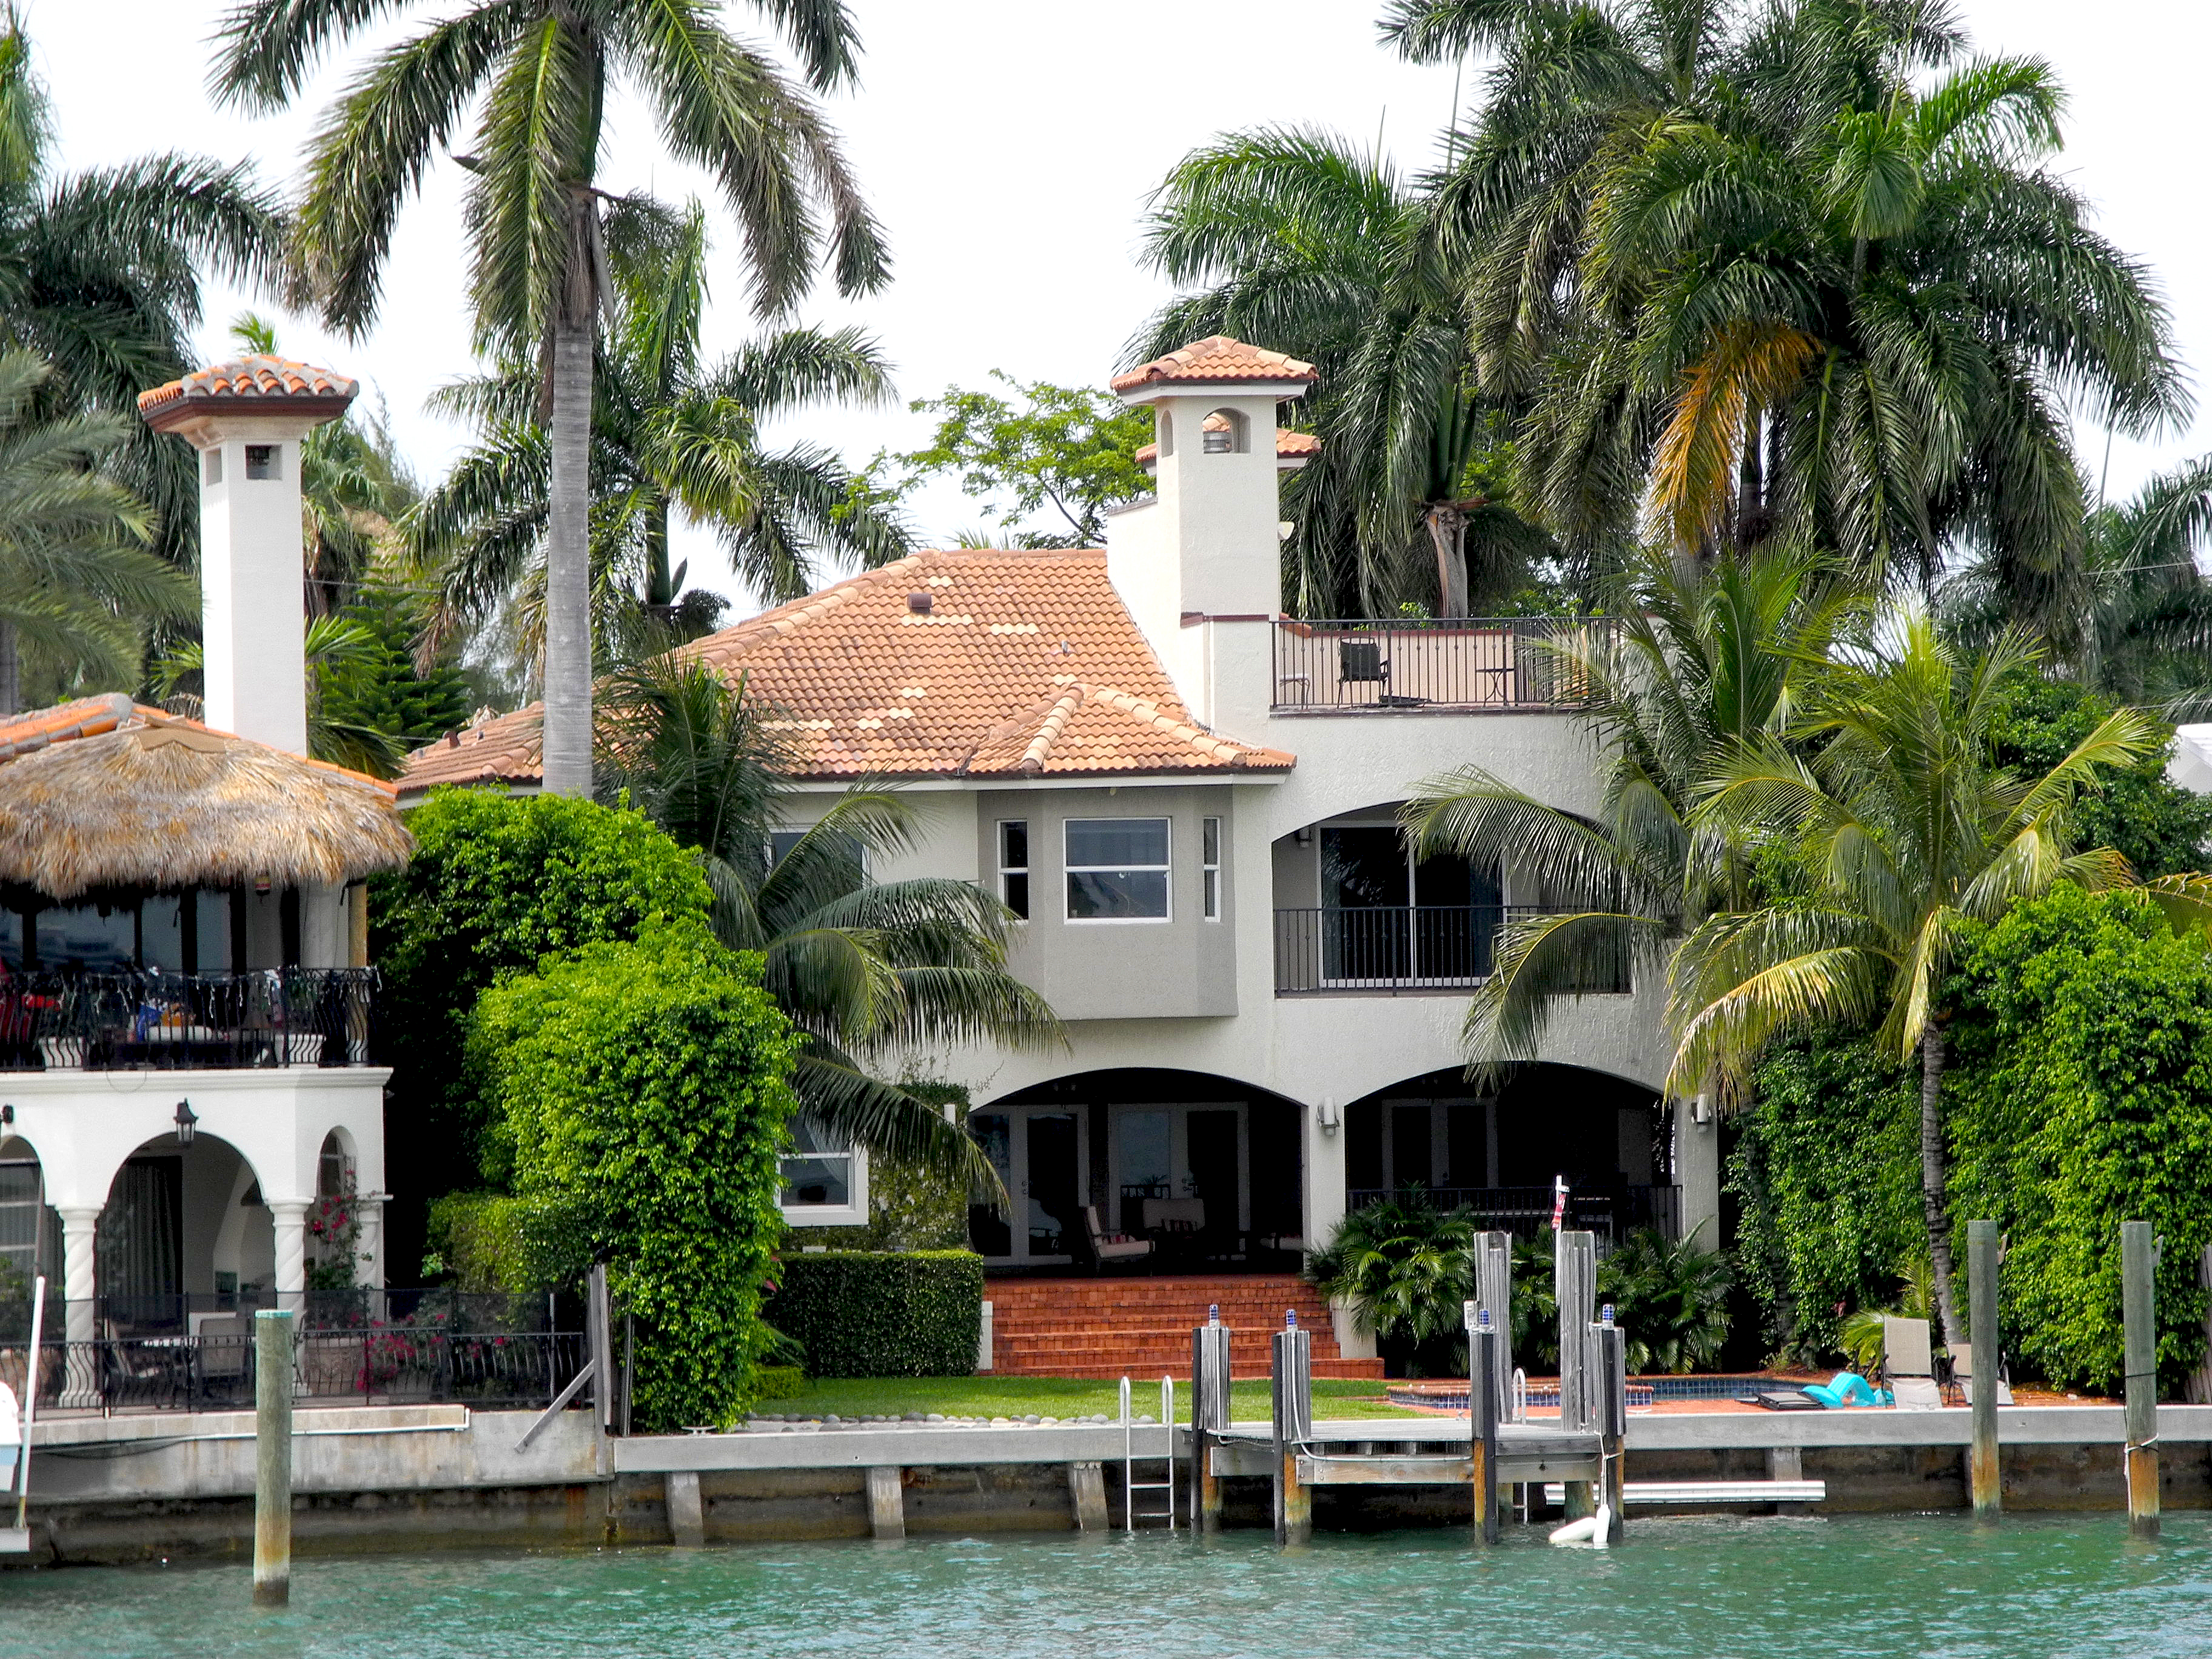 Venetian Islands Archipelago In Miami Thousand Wonders